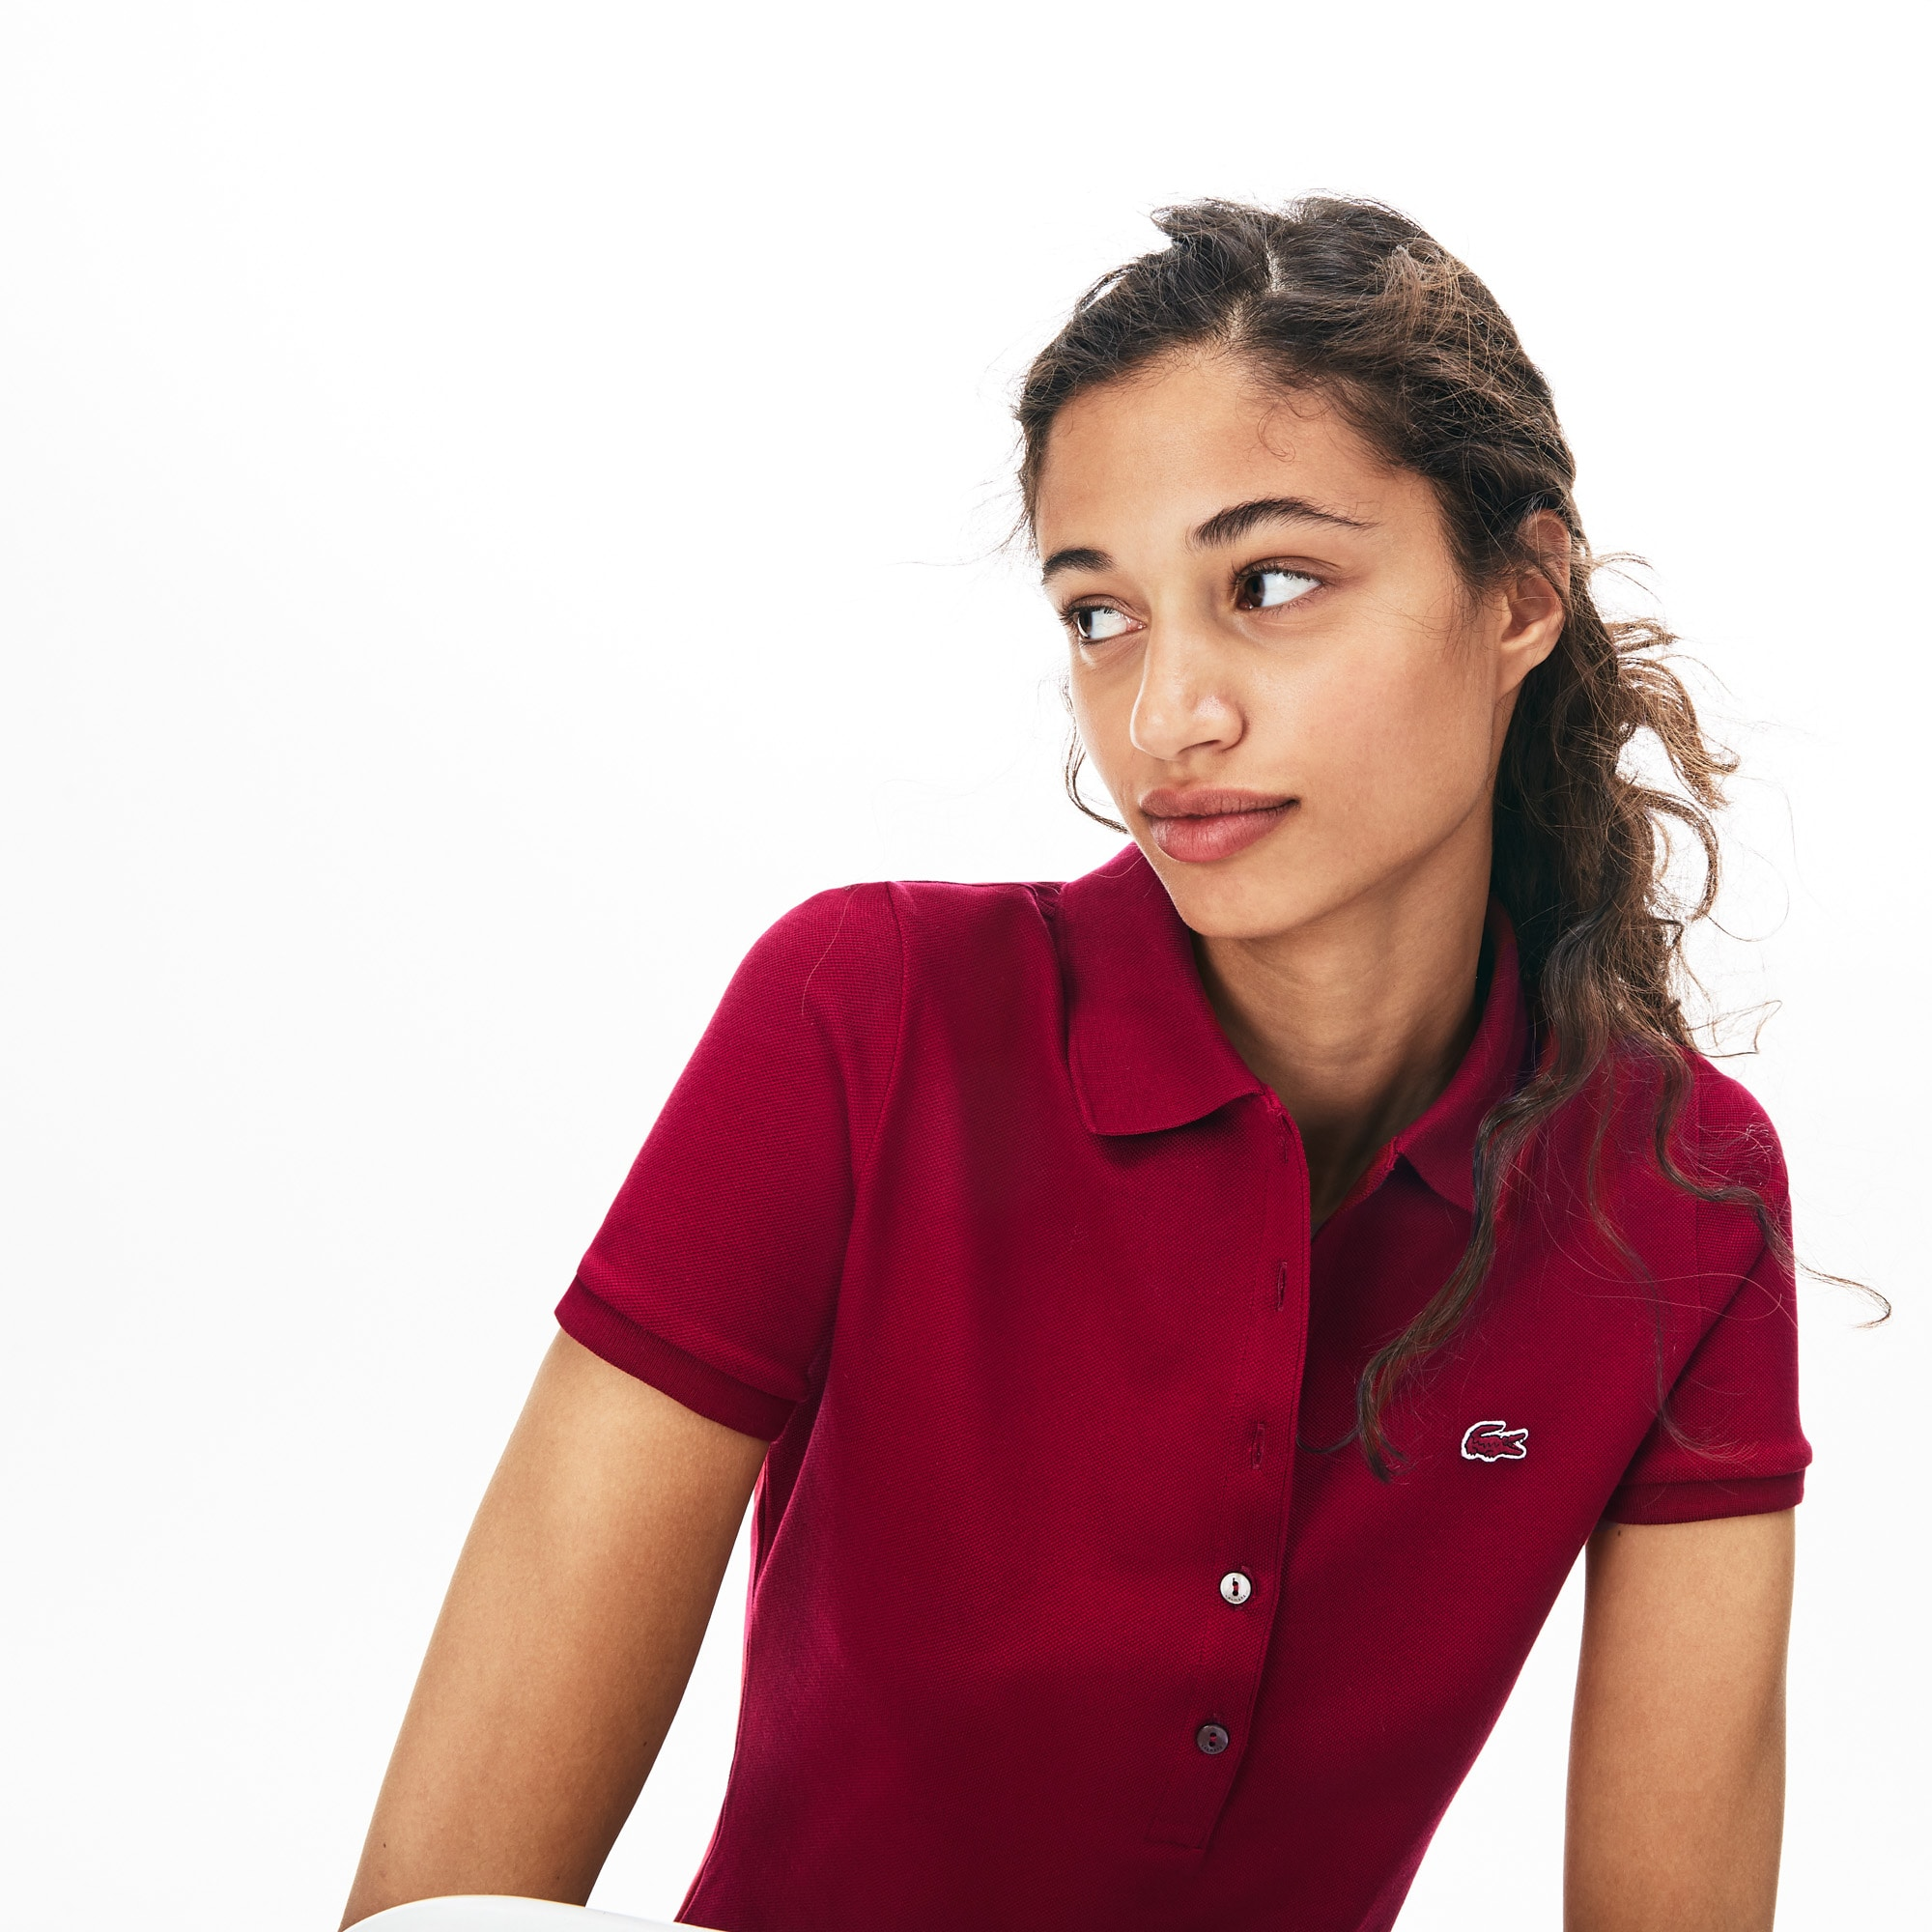 presenting closer at lace up in Women's Polo Shirts | Women's Fashion| LACOSTE